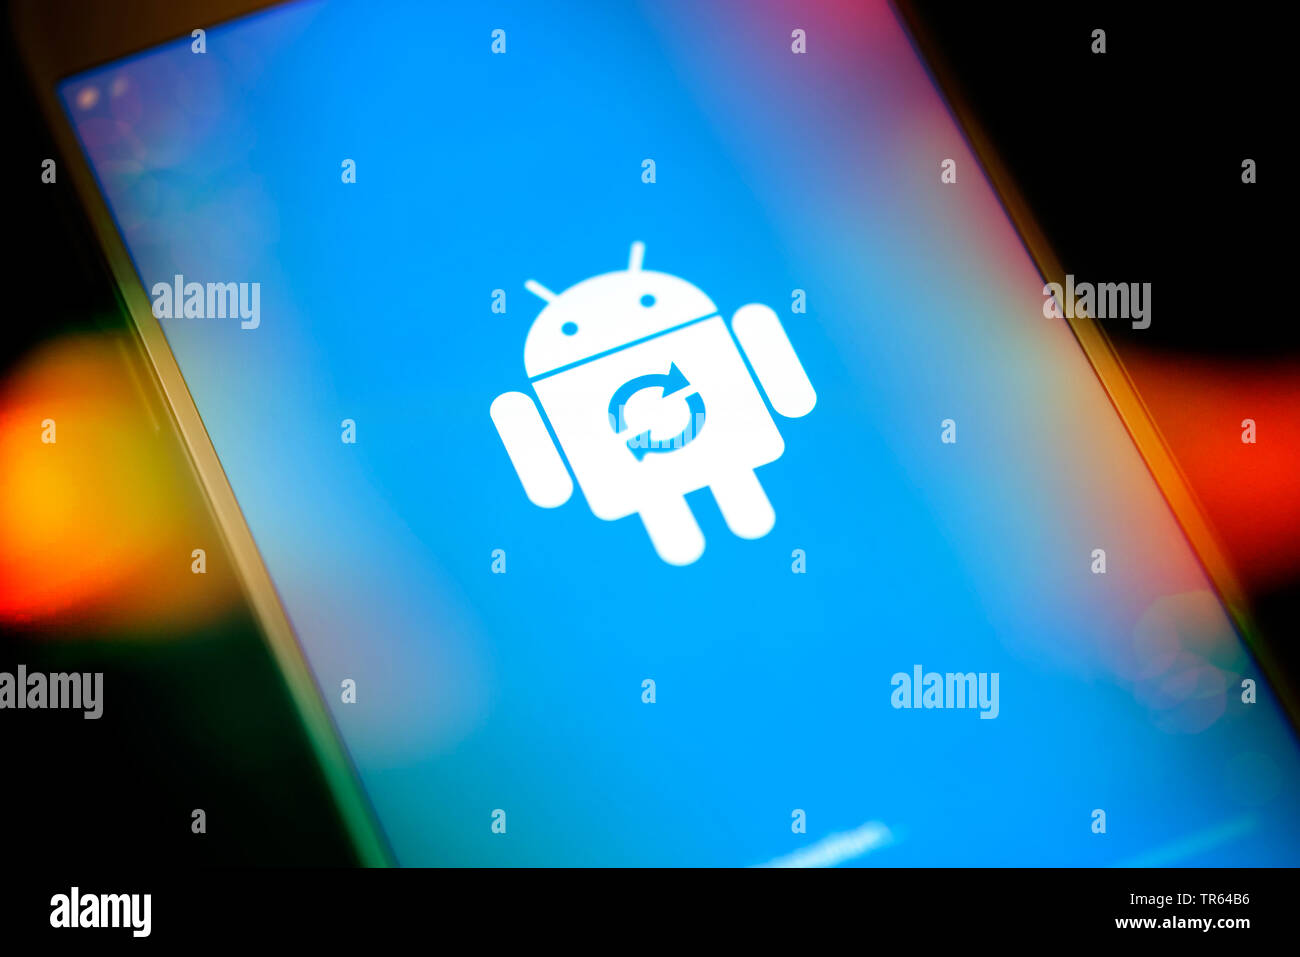 Laden des Android-Betriebssystems | charging of Android operating system | BLWS473194.jpg [ (c) blickwinkel/McPHOTO/C. Ohde Tel. +49 (0)2302-2793220, - Stock Image